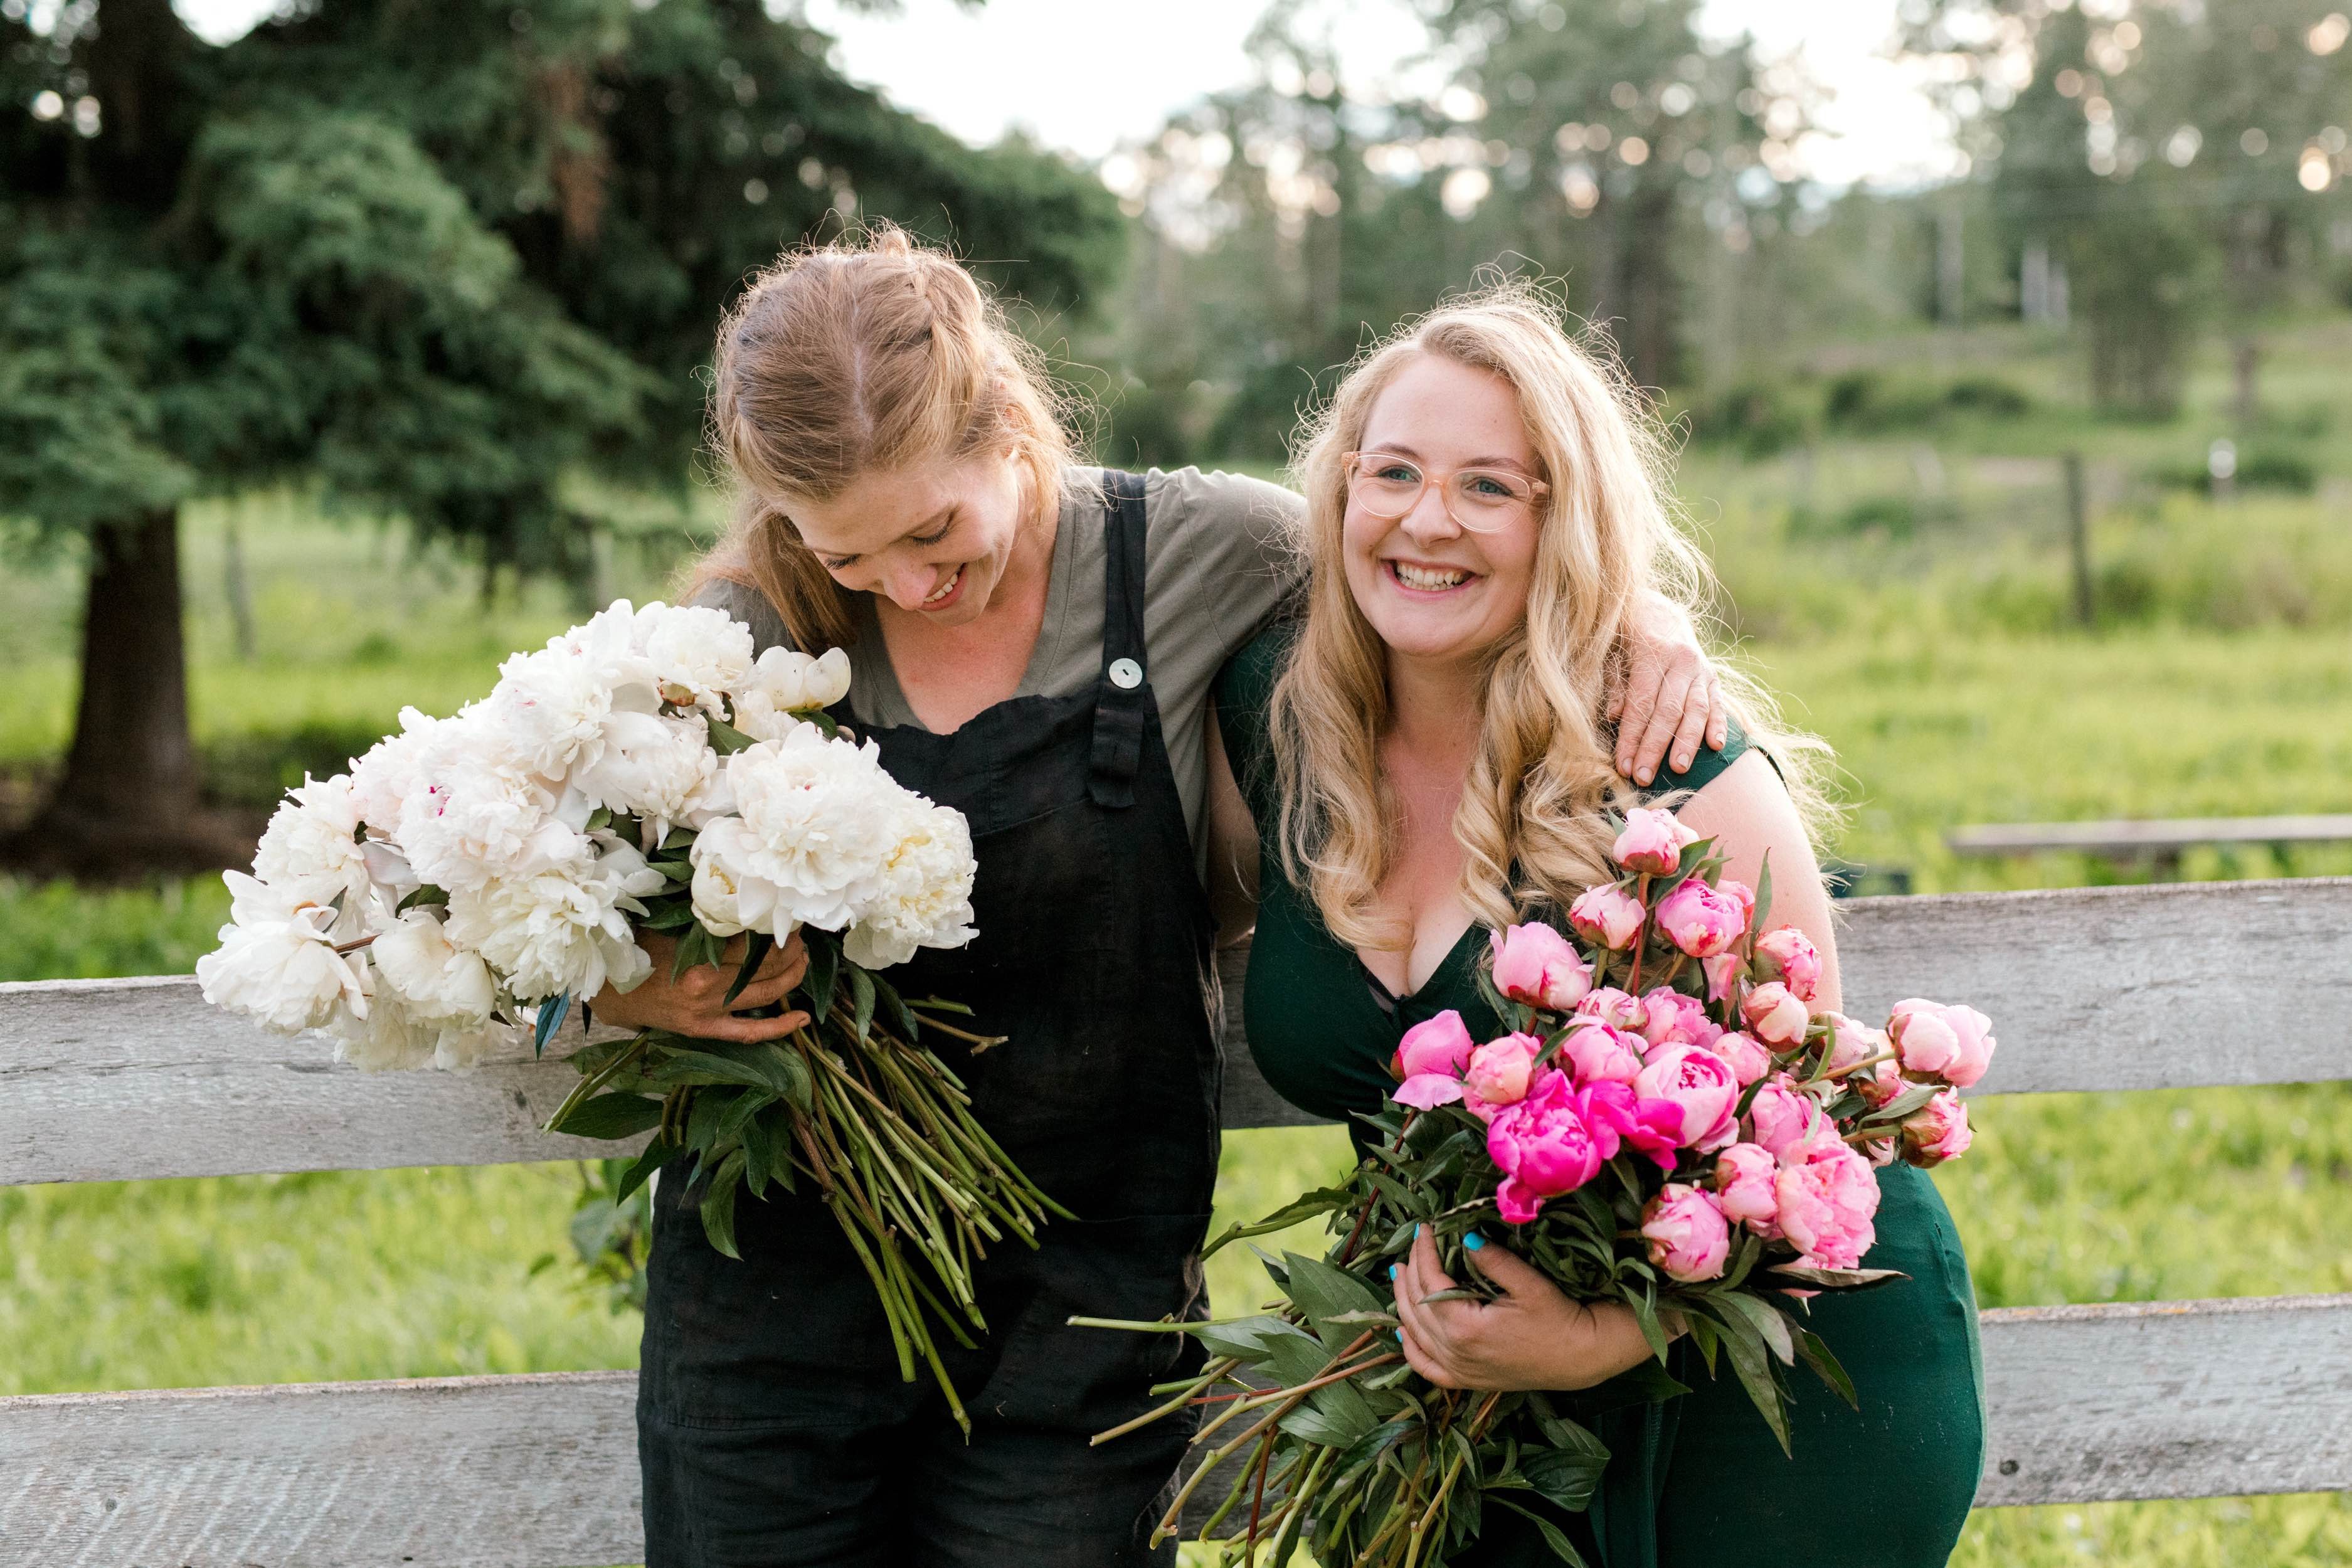 Creekside Floral Collective